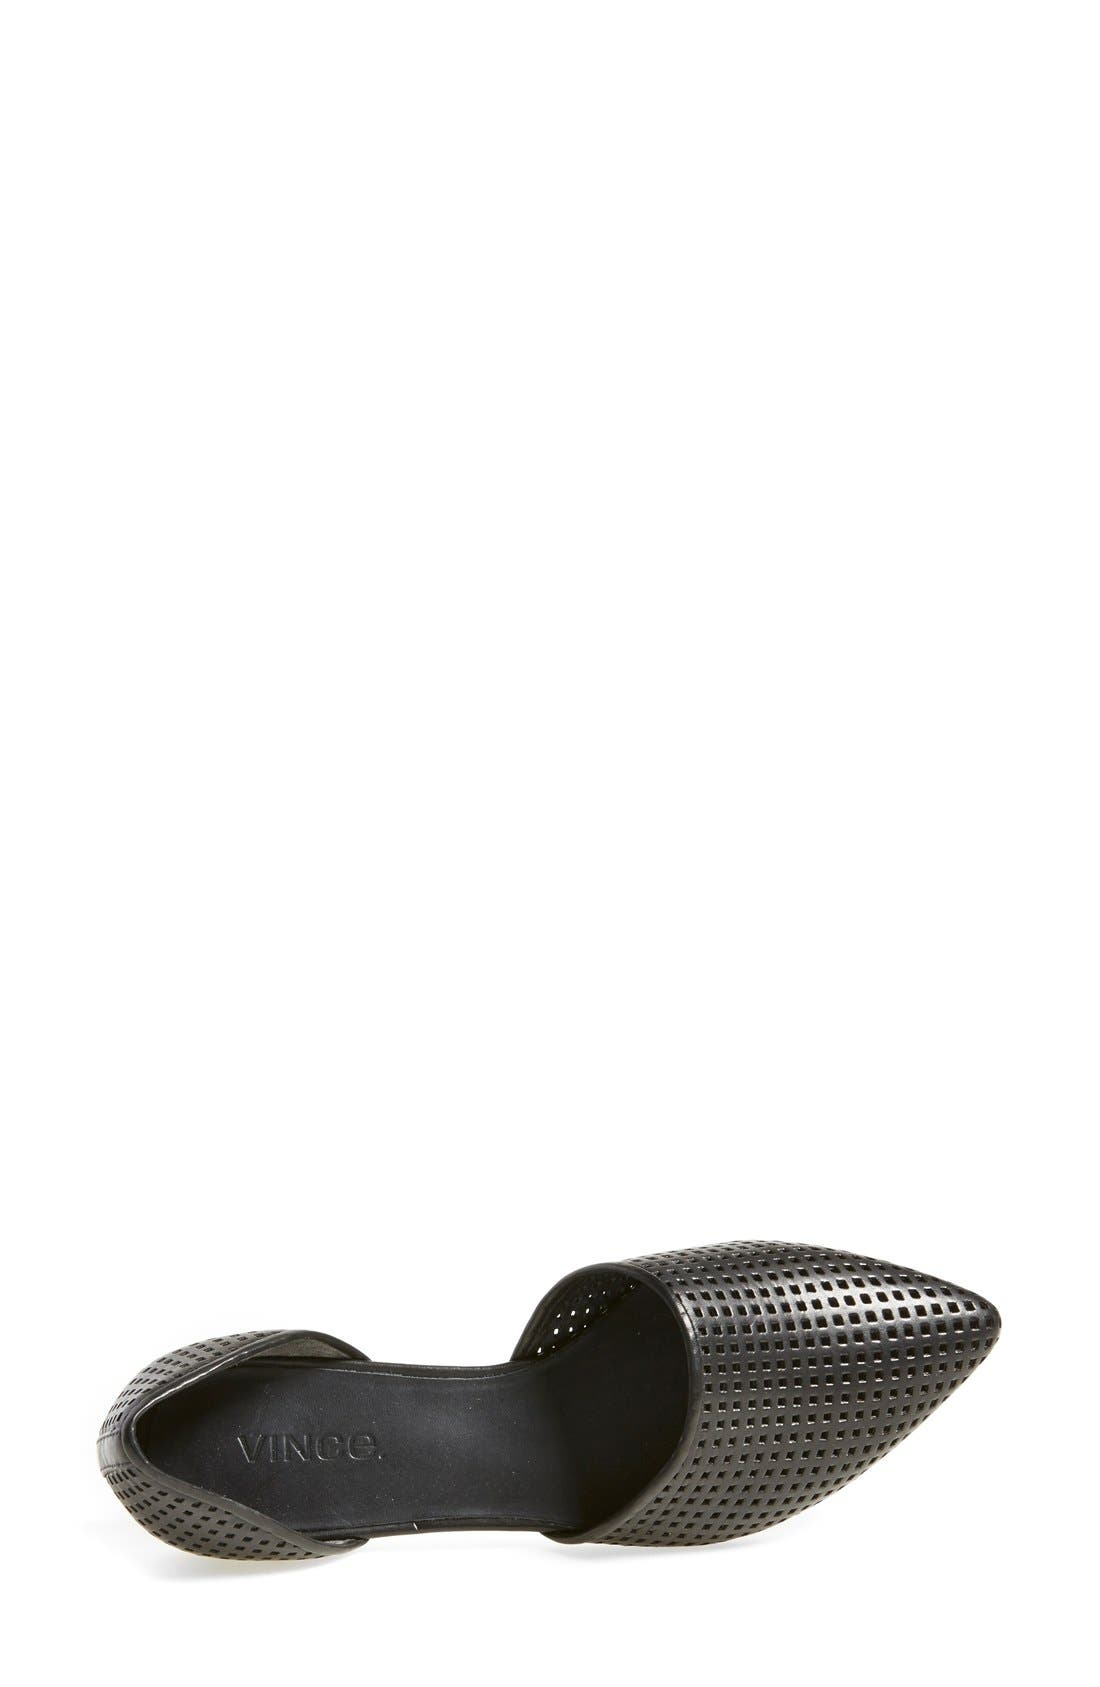 Alternate Image 3  - Vince 'Nina 2' Perforated Leather D'Orsay Flat (Women)